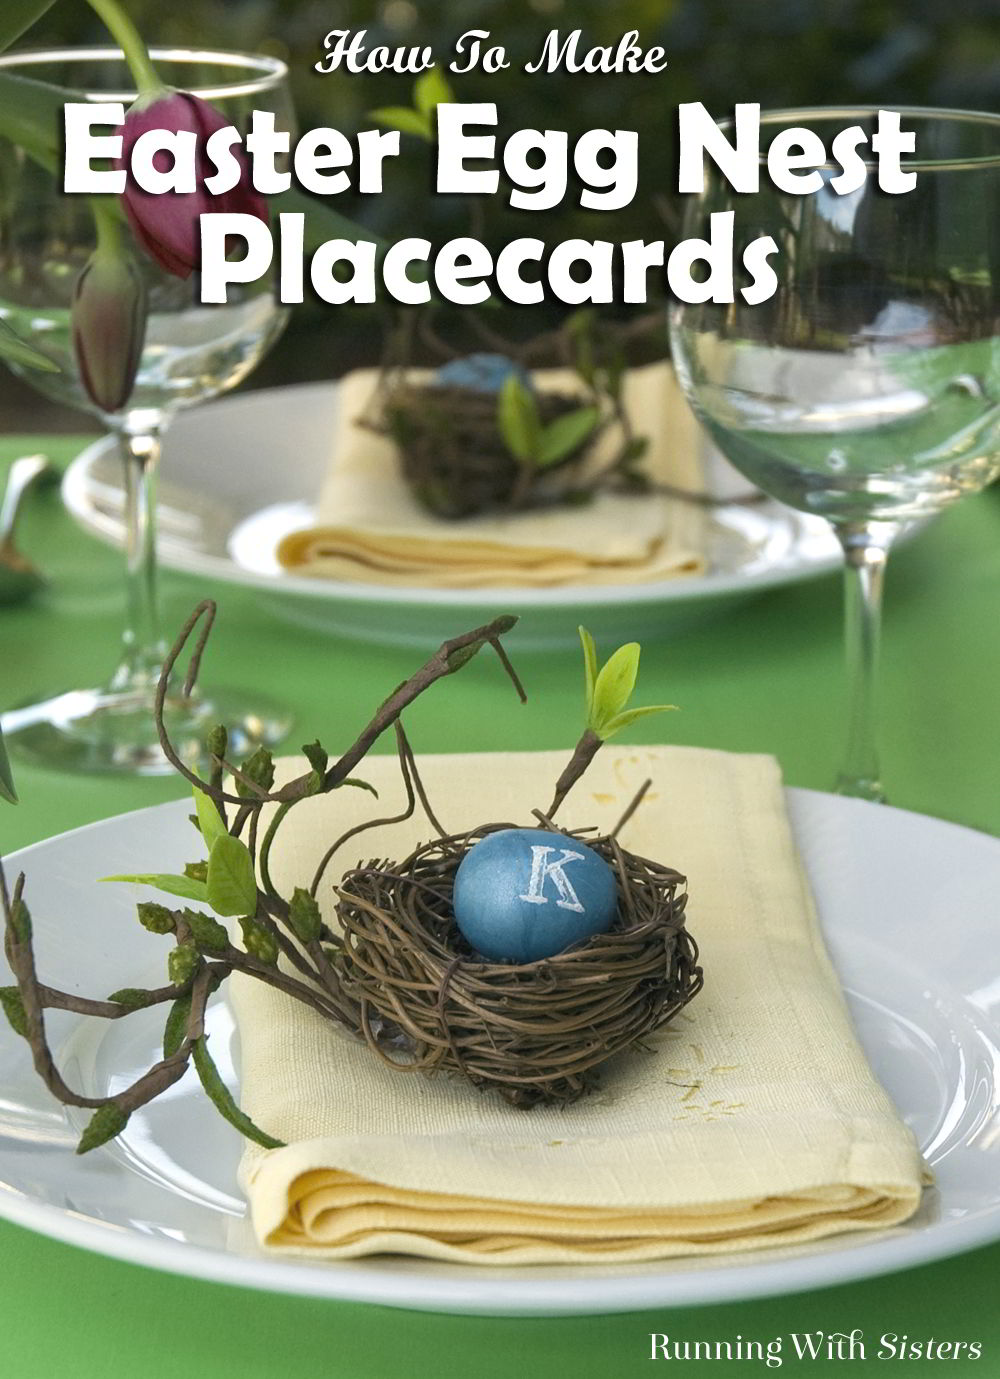 These Easter Egg Placecards are so charming and easy to make you'll want to host Easter brunch for the whole flock!